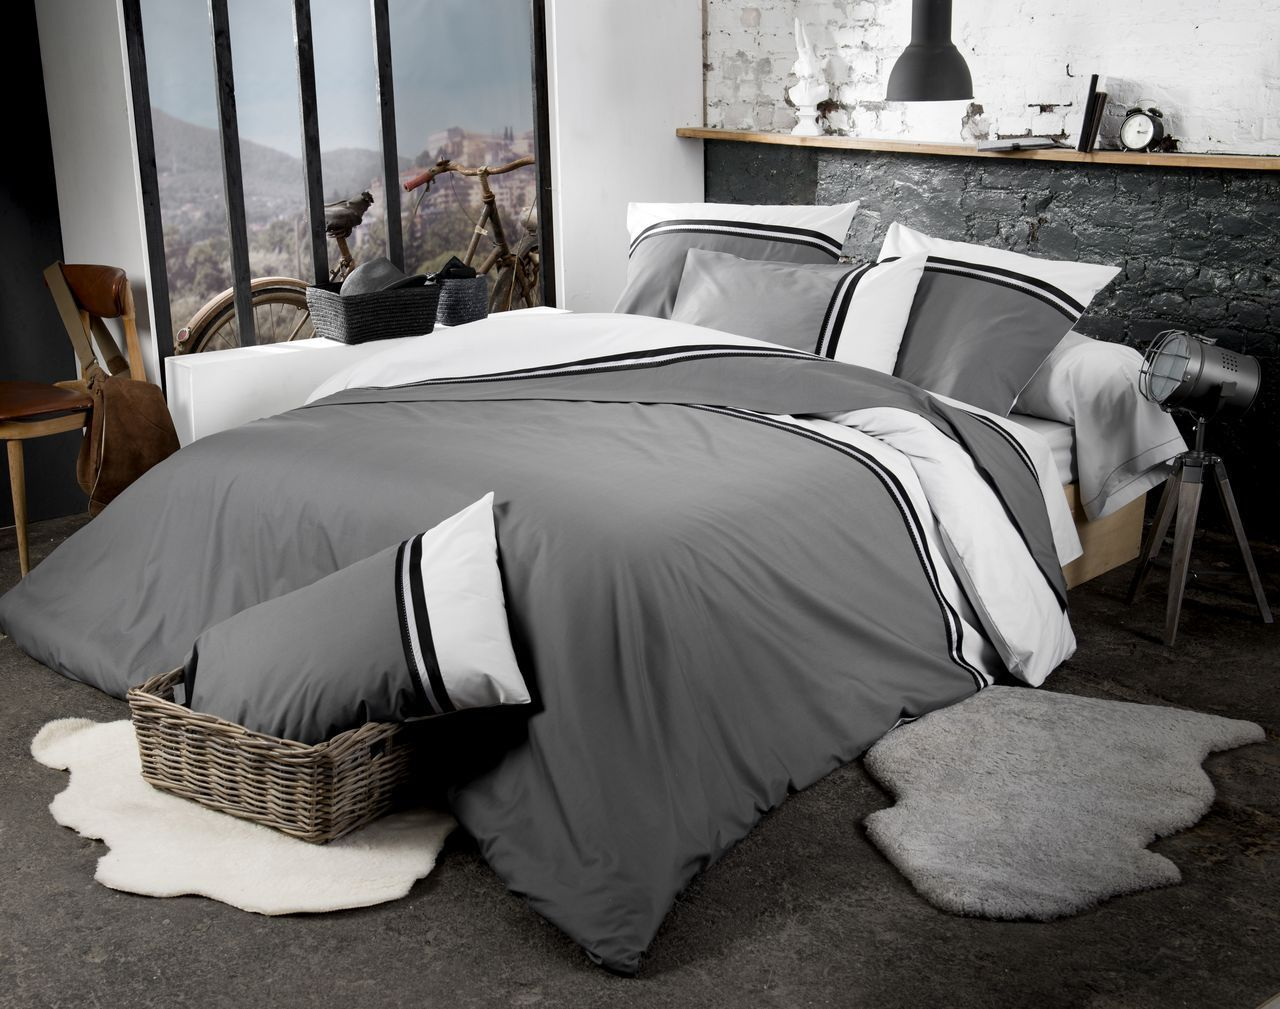 parure de lit smoking percale blanc gris galon satin noir. Black Bedroom Furniture Sets. Home Design Ideas